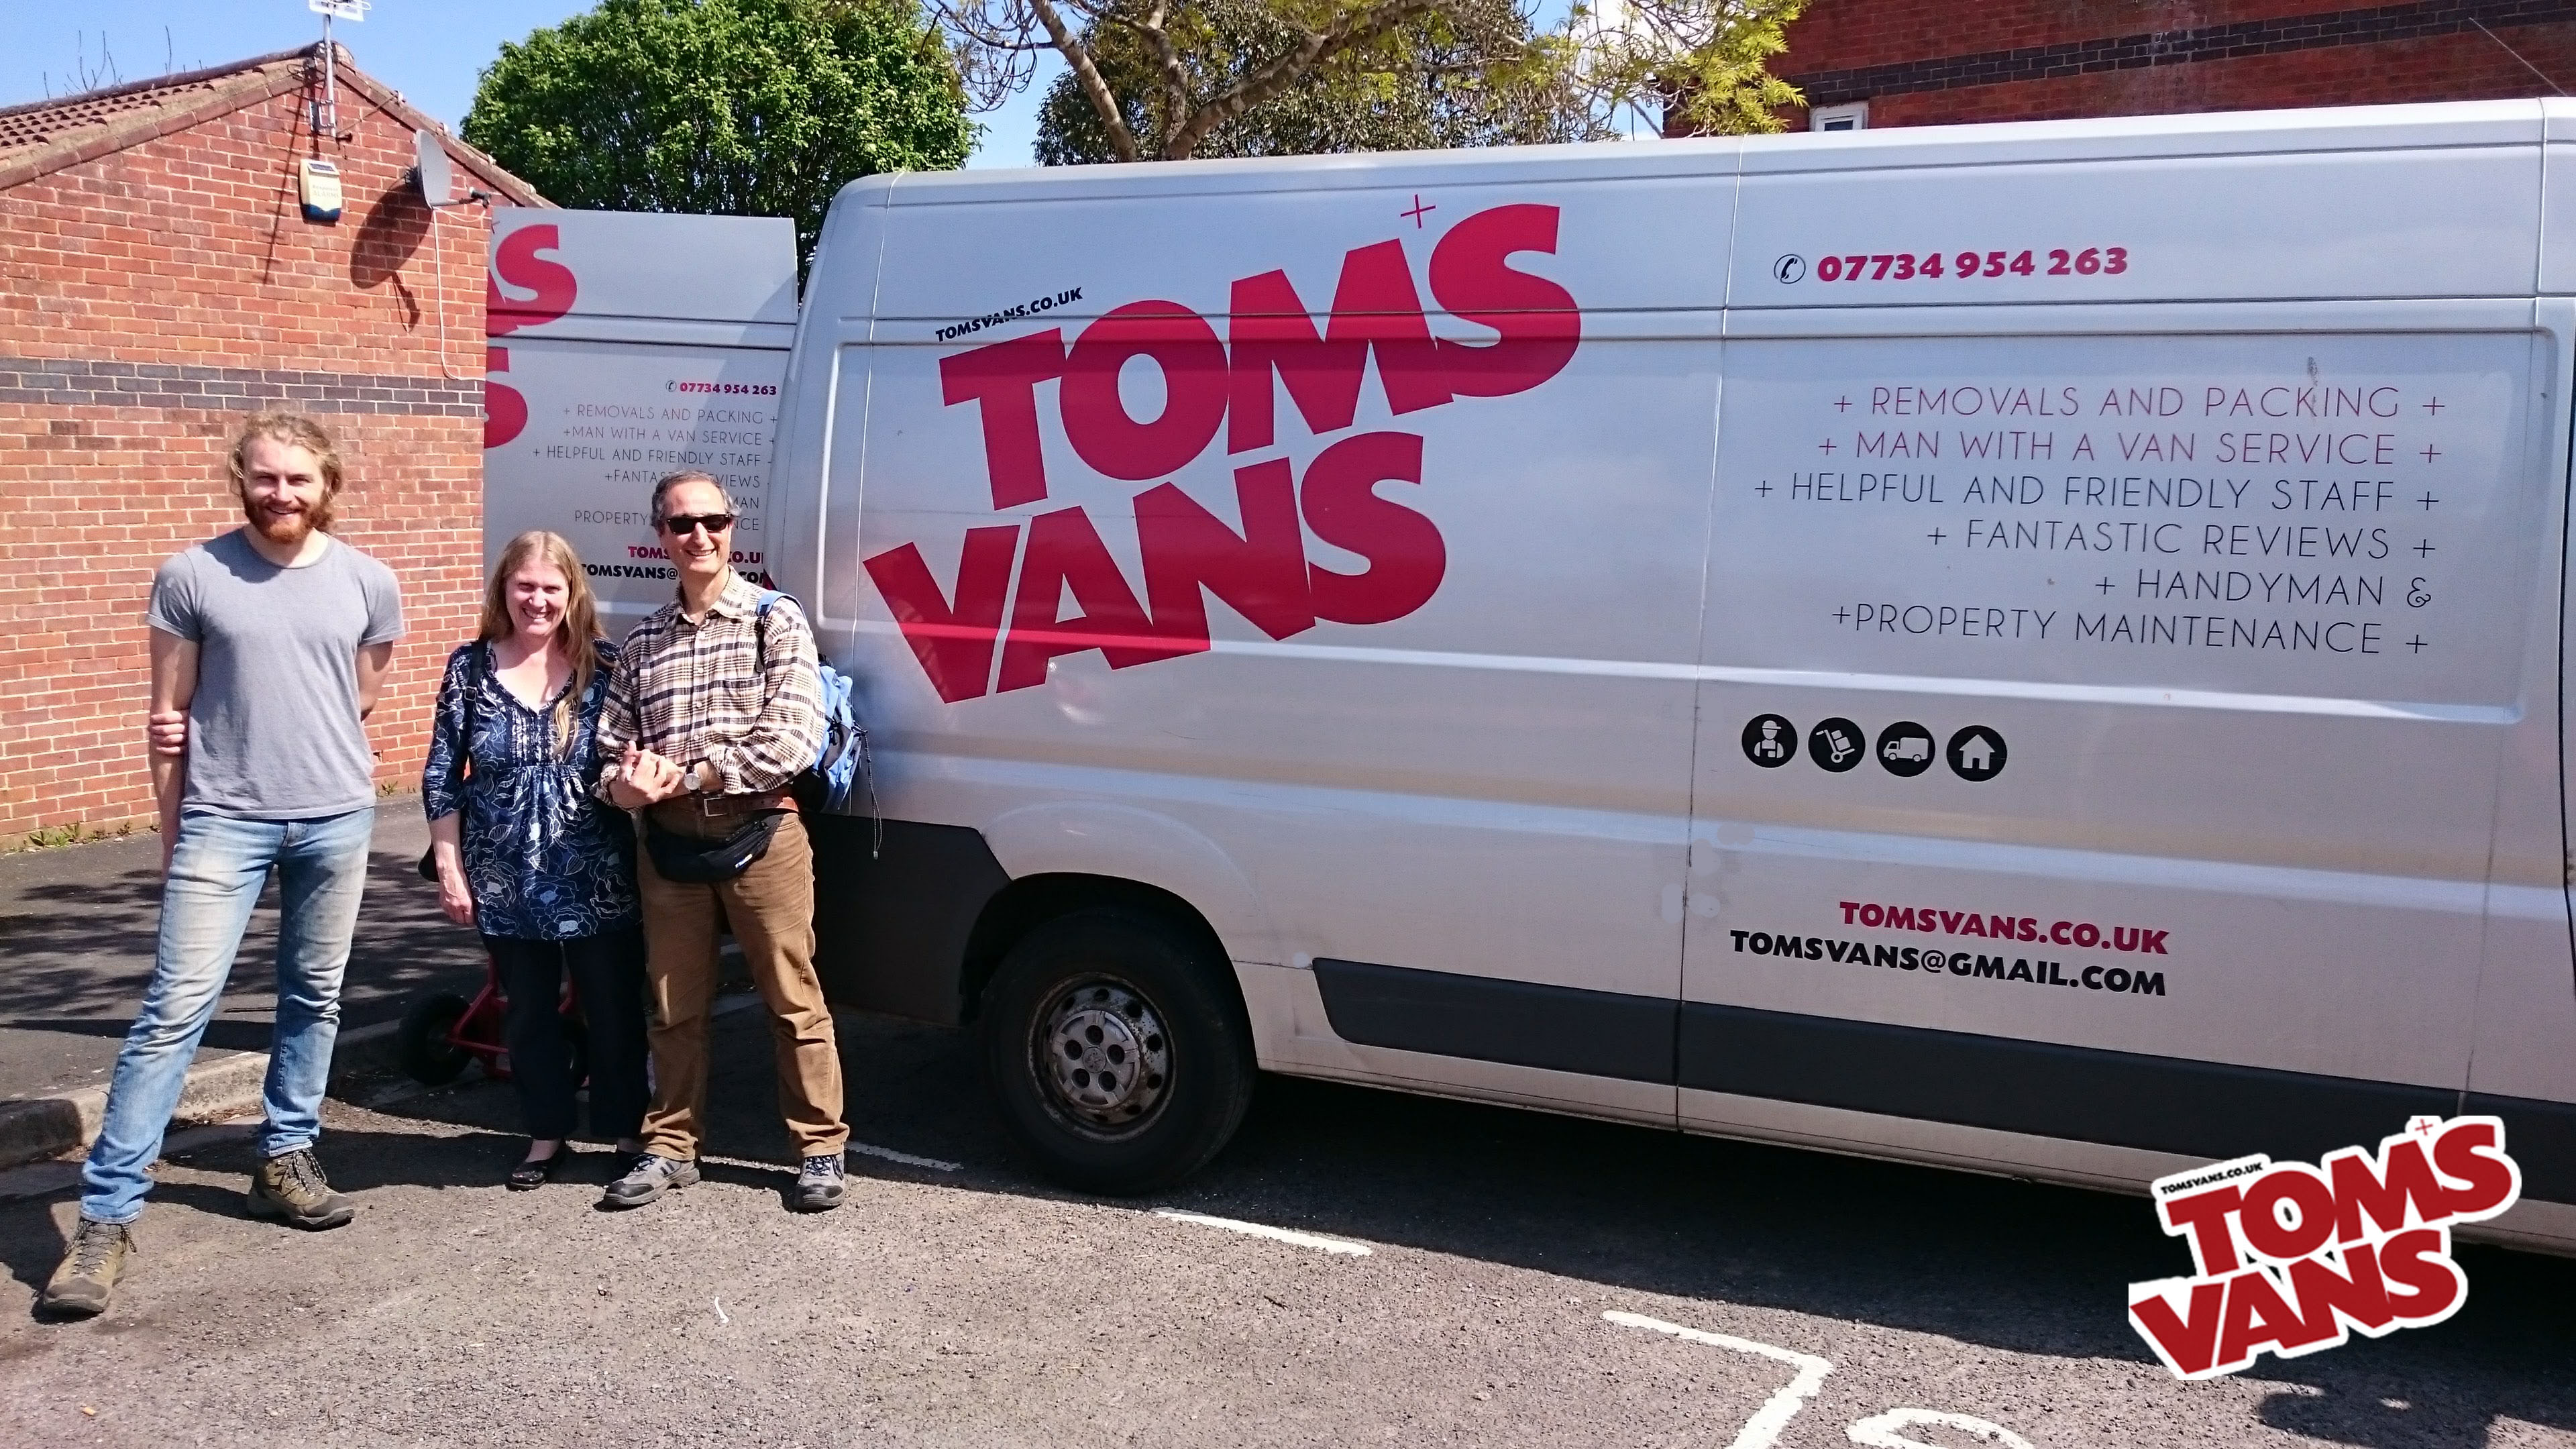 Bath & Bristol professional removals service - Tom's Vans Your Local Man with a Van.